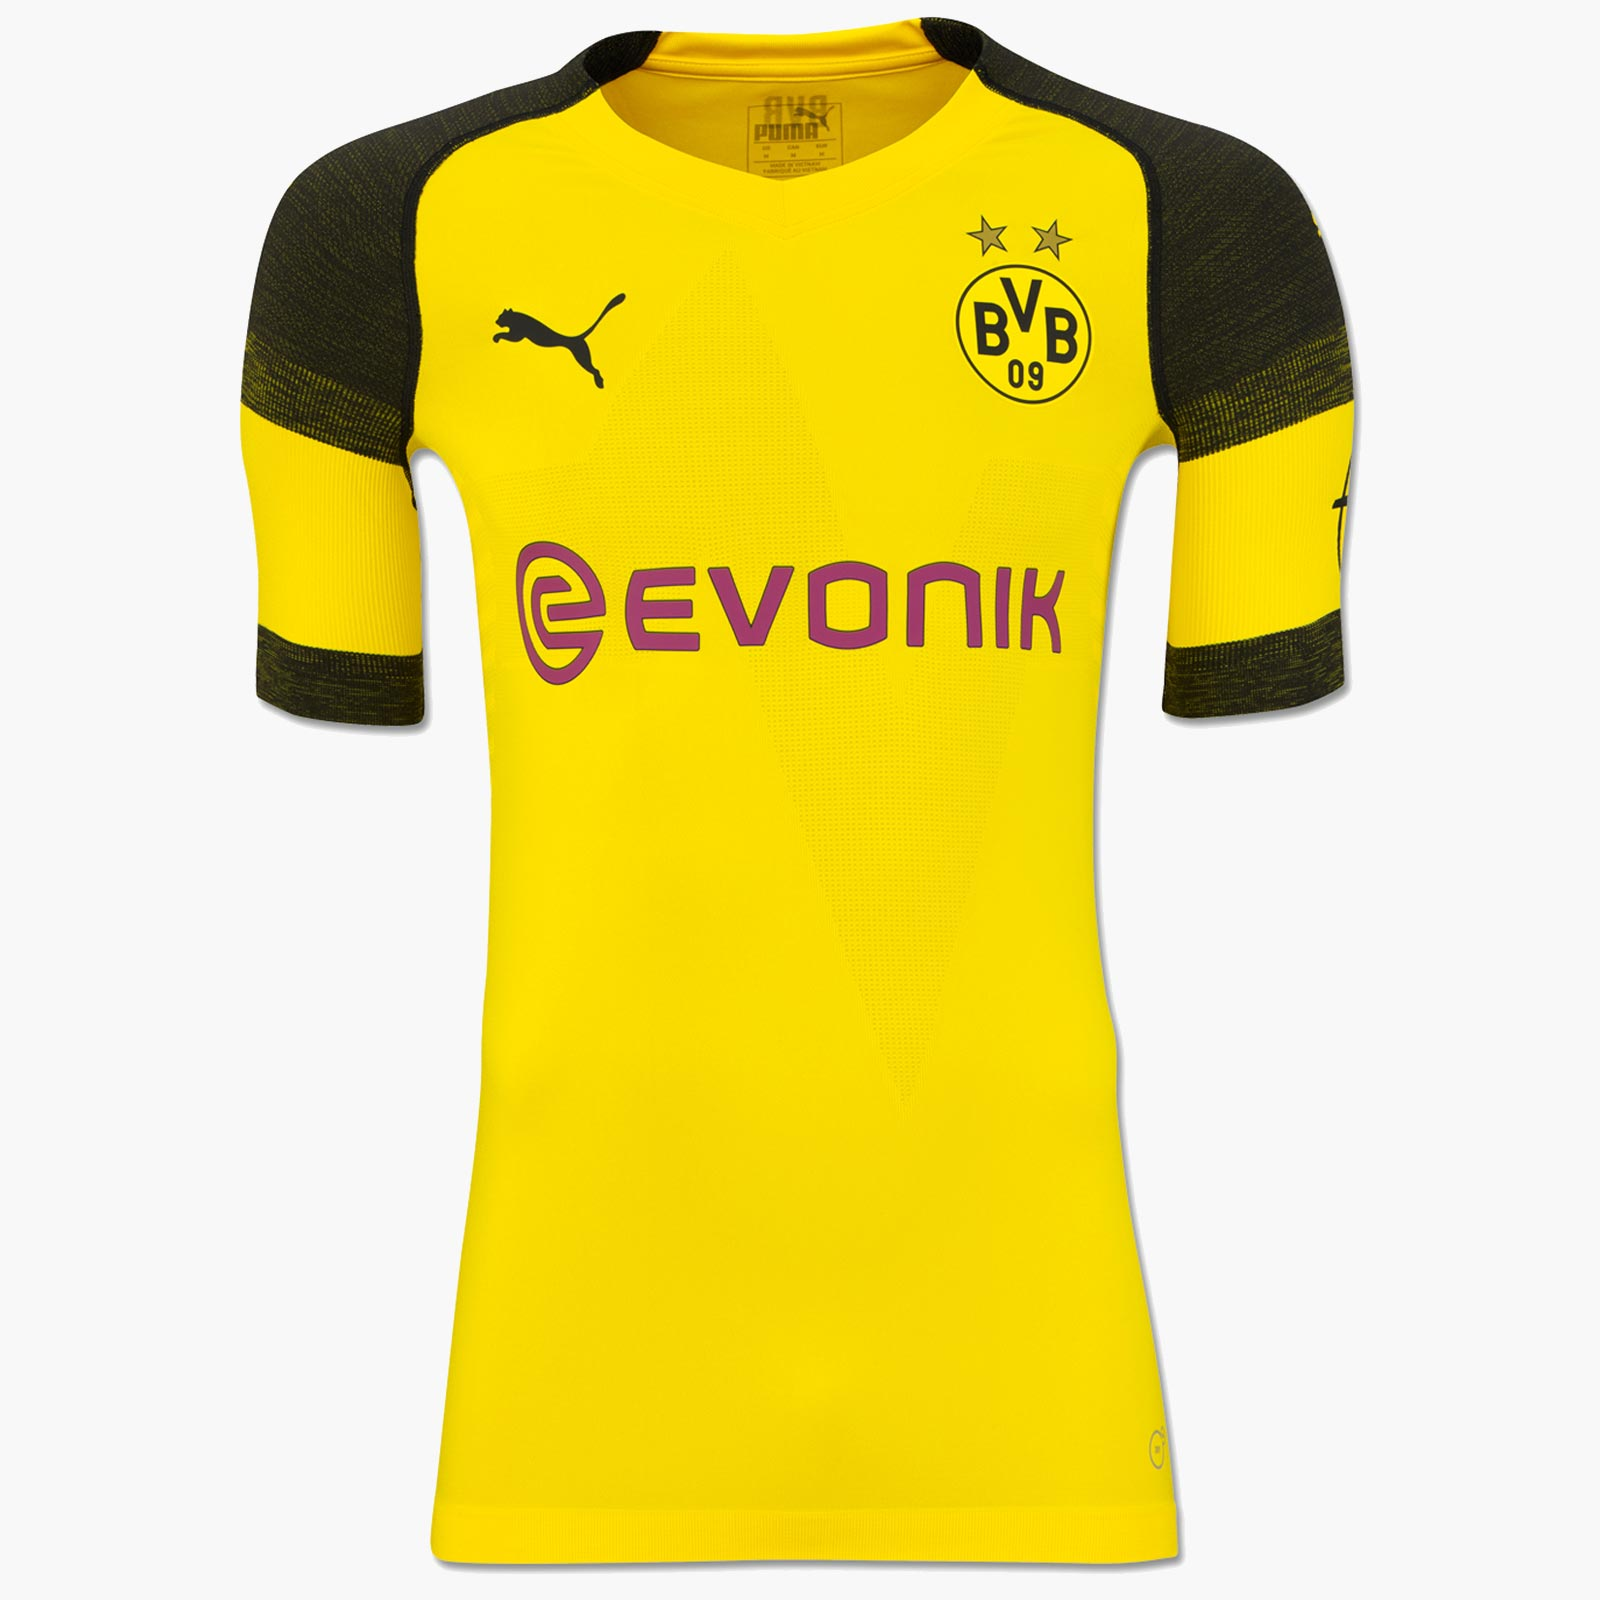 bvb-18-19-home-kit%2B%25283%2529.jpg